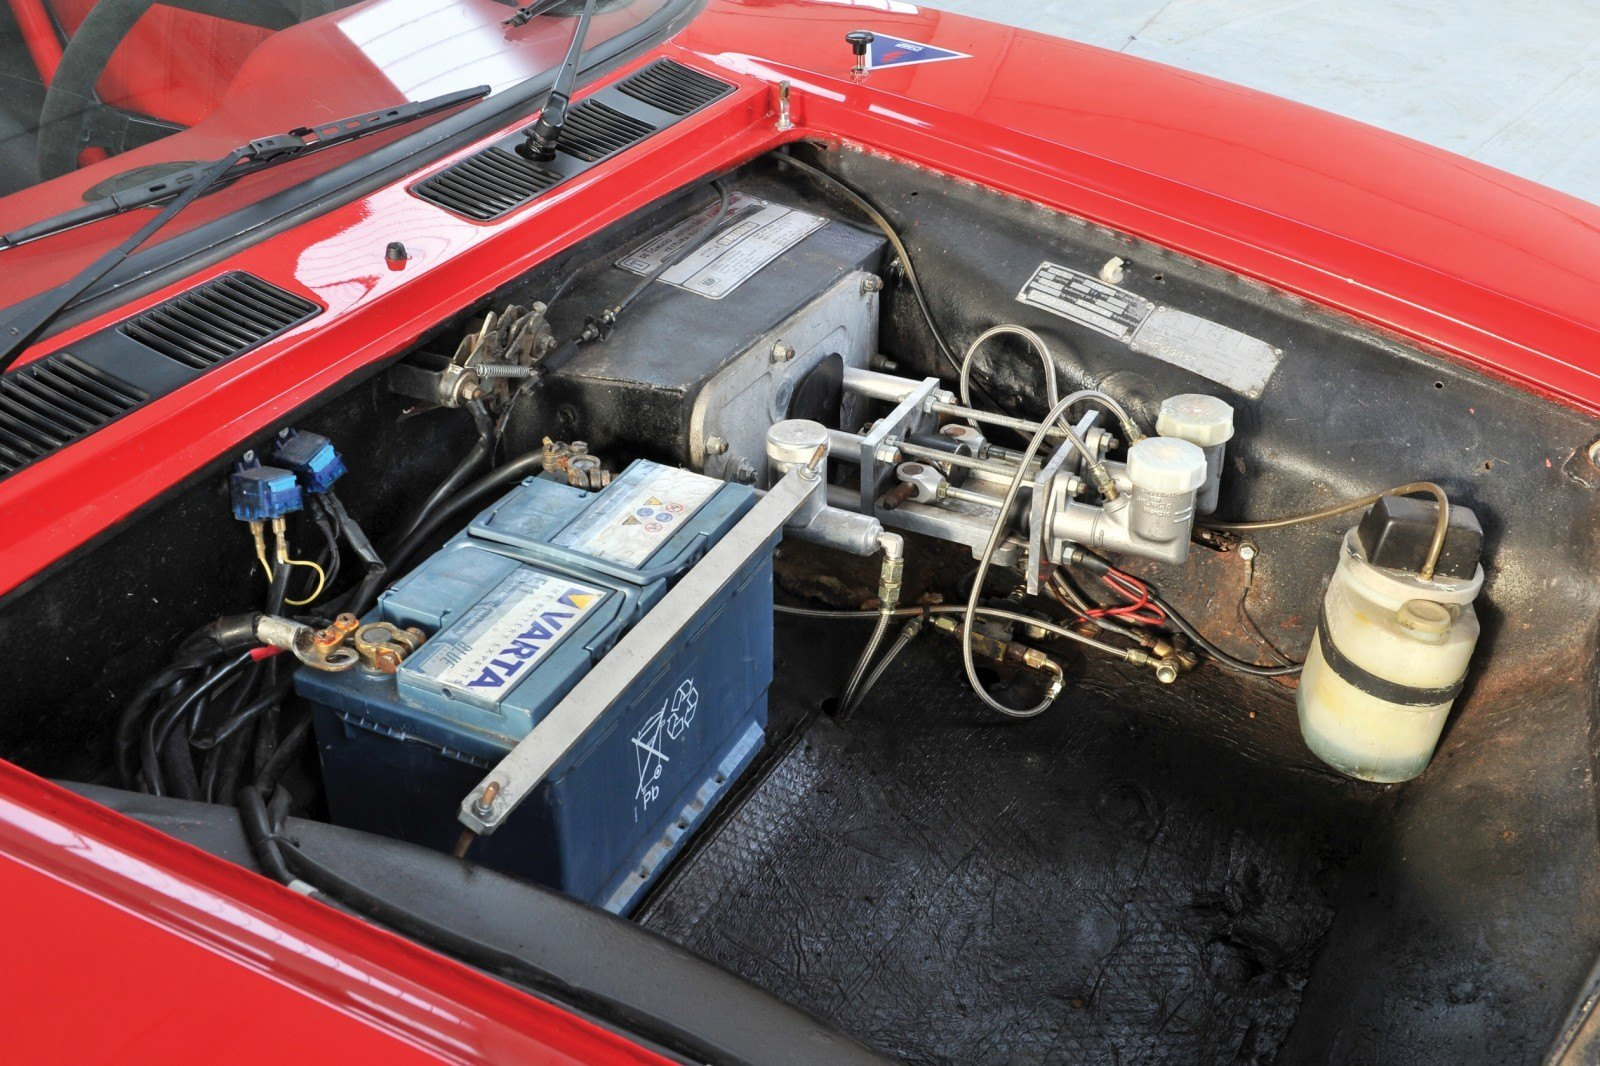 RM Auctions Monaco 2014 Highlights - 1973 DeTomaso Pantera Rally Special Is Low-Brow Heaven 15